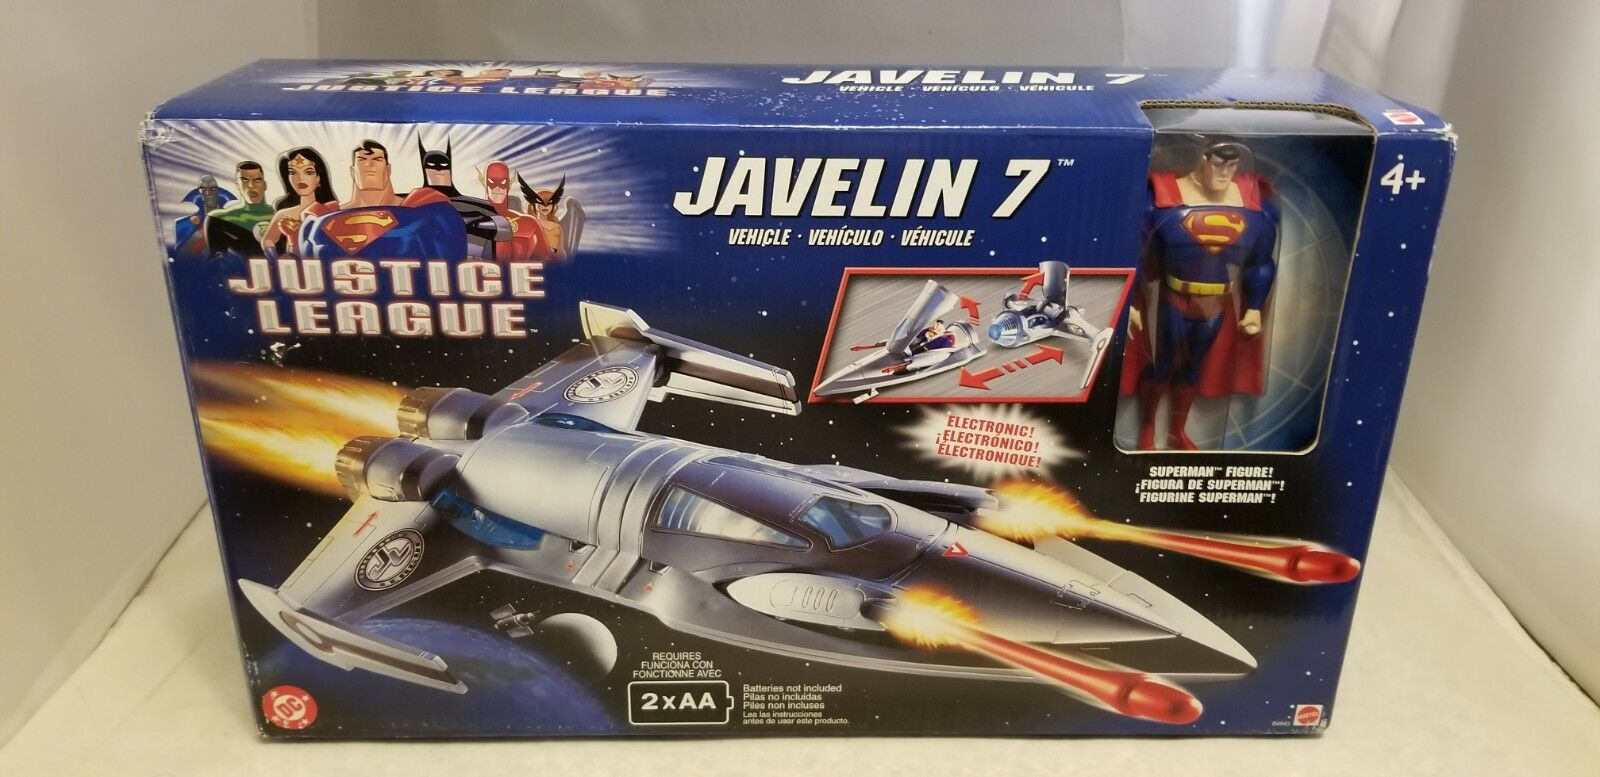 2003 JUSTICE LEAGUE JAVELIN 7 SHIP